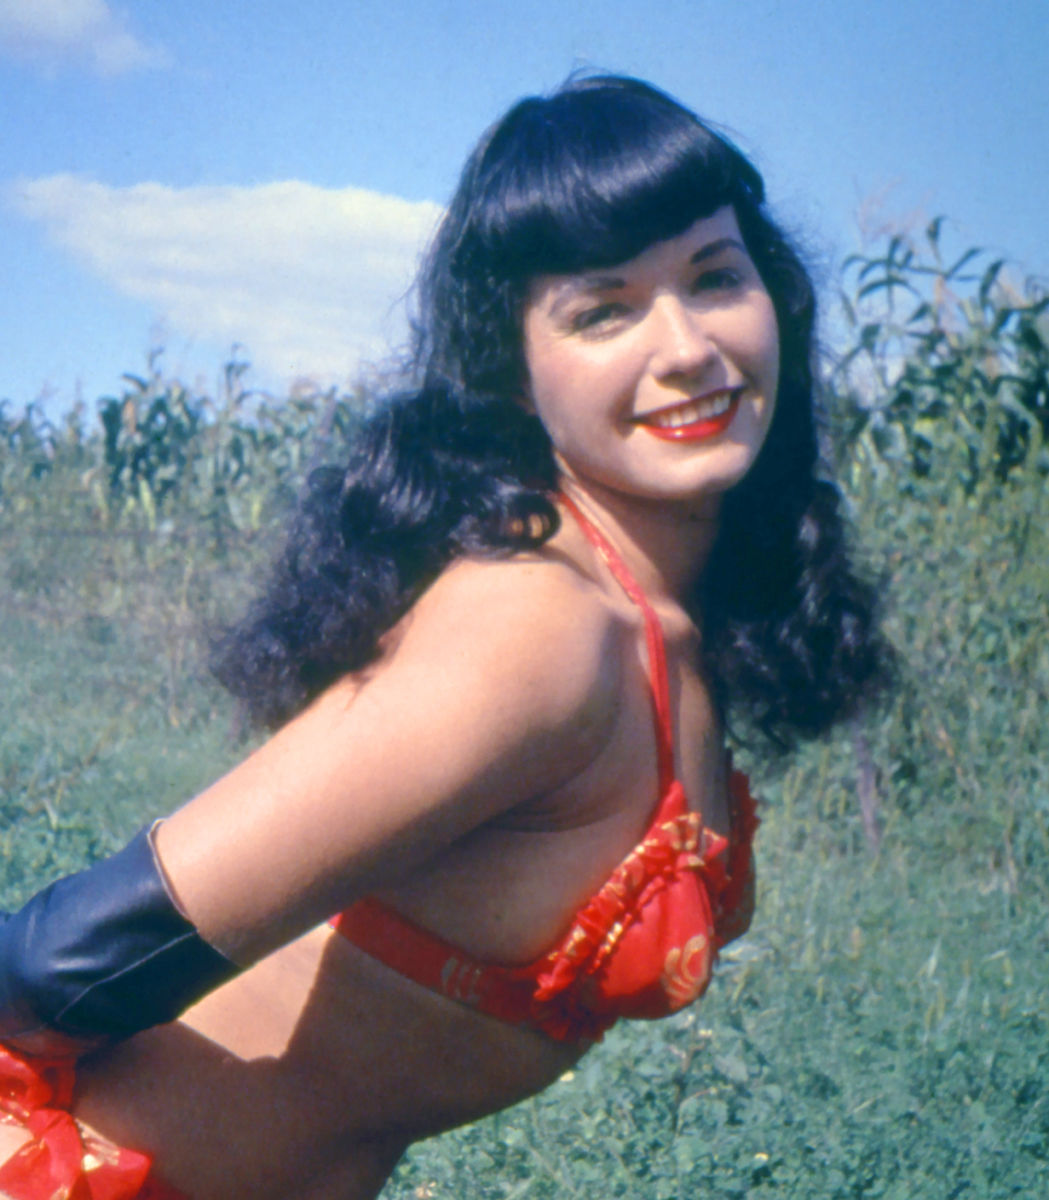 Photo of Bettie Page: Bettie Mae Page (April 22, 1923 – December 11, 2008) was an American model who became famous in the 1950s for her pin-up photos.